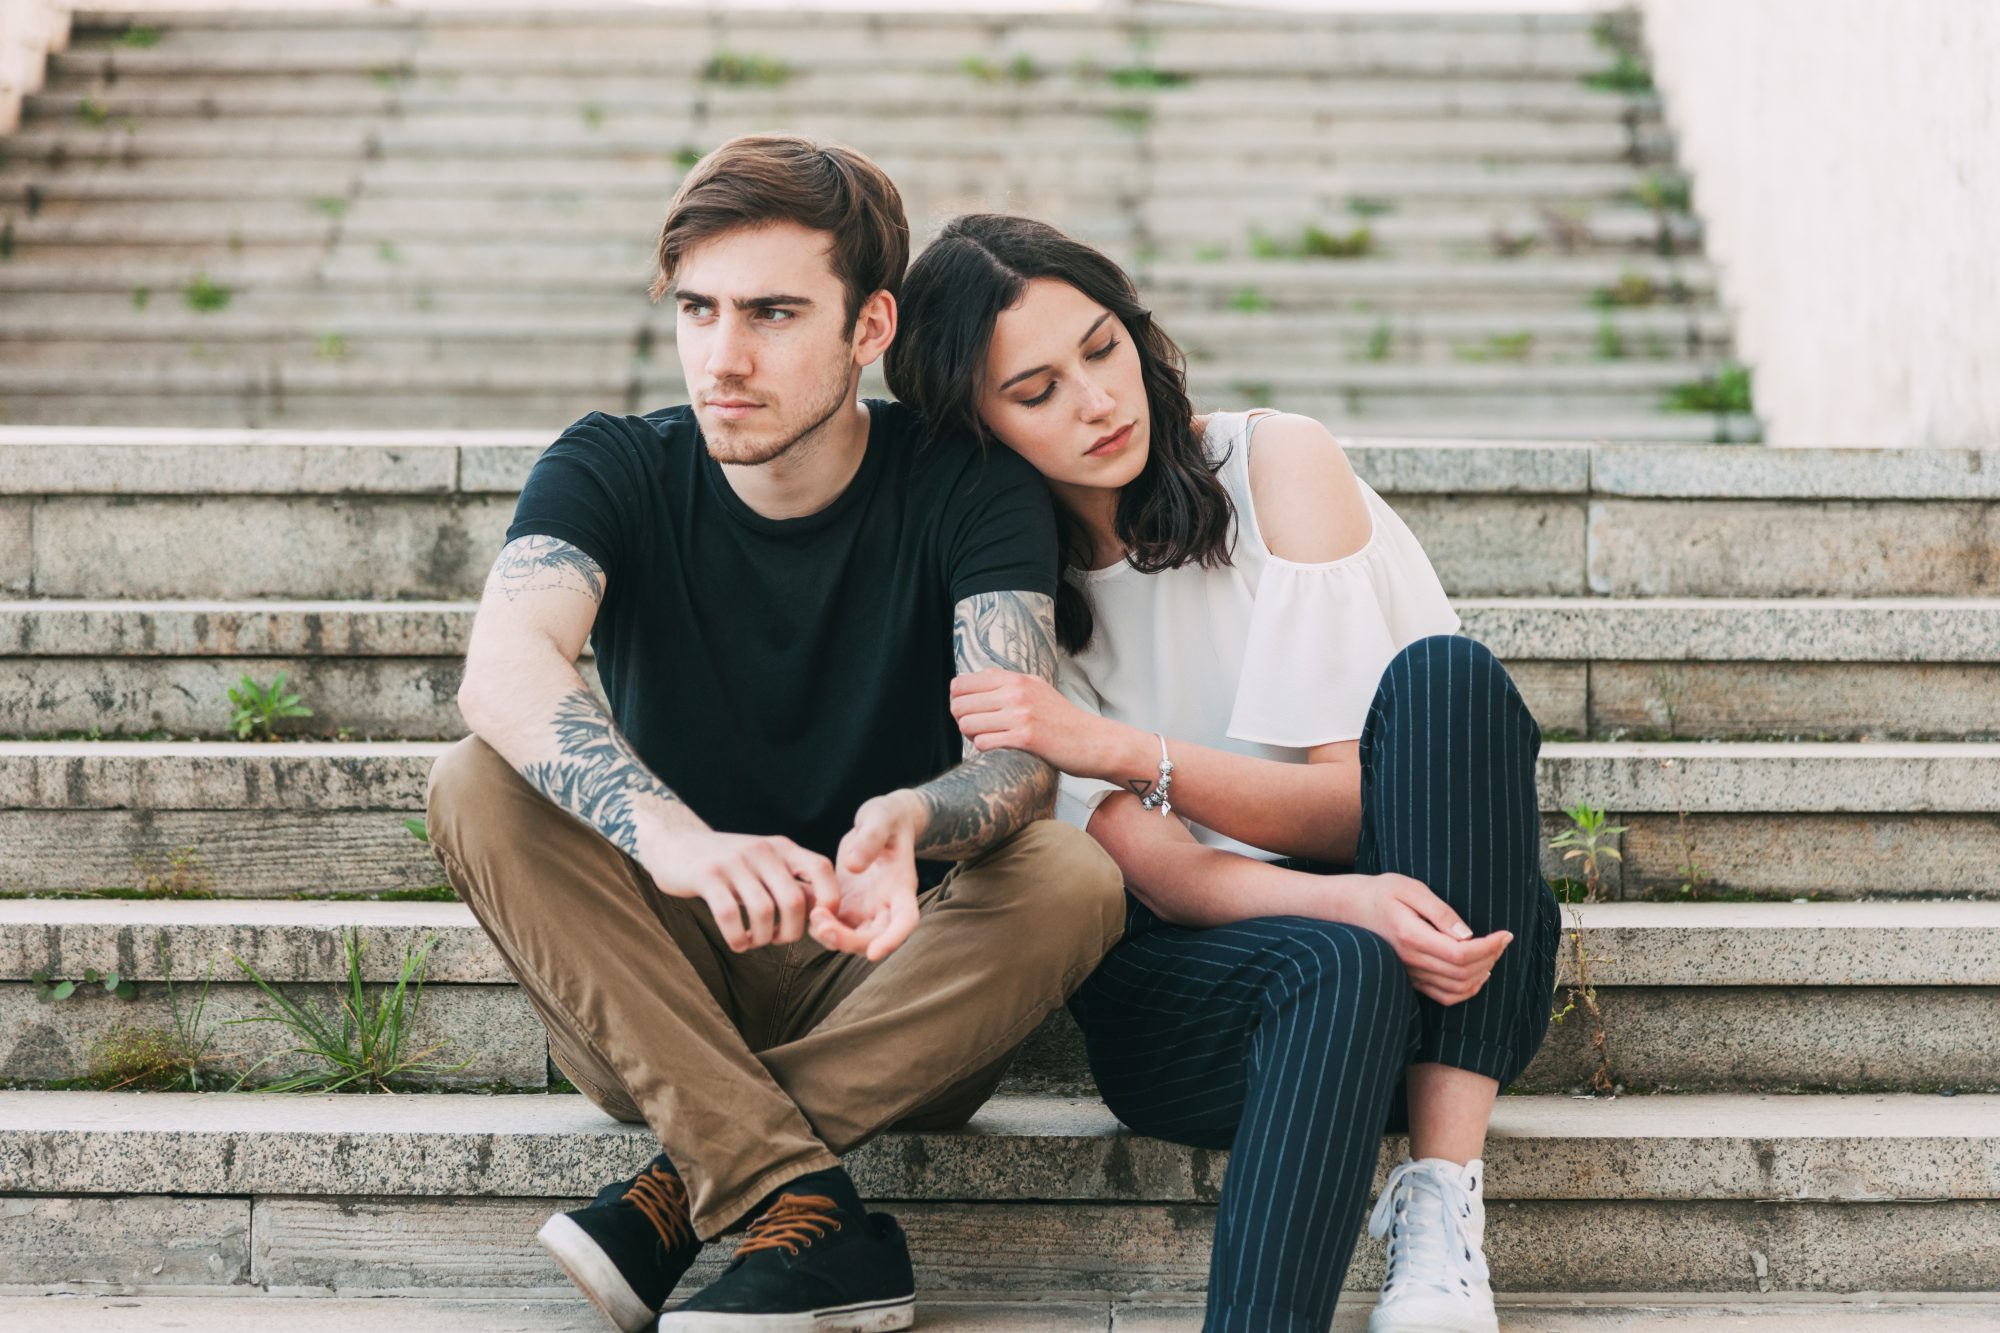 Should You Stay Friends With an Ex? Here's What Experts Say